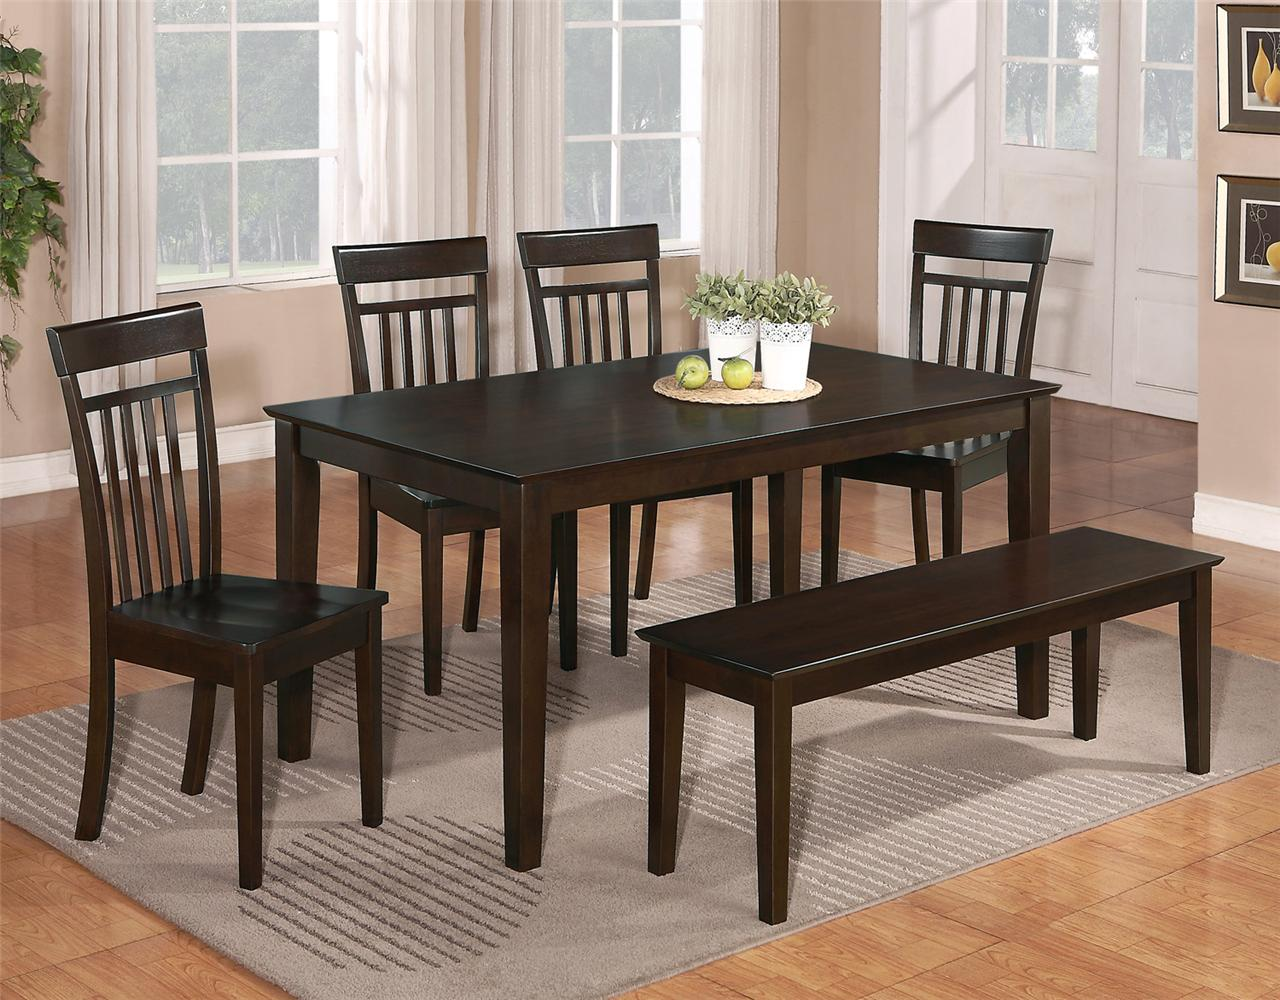 6 pc dinette kitchen dining room set table w 4 wood chair for Kitchen dining room chairs